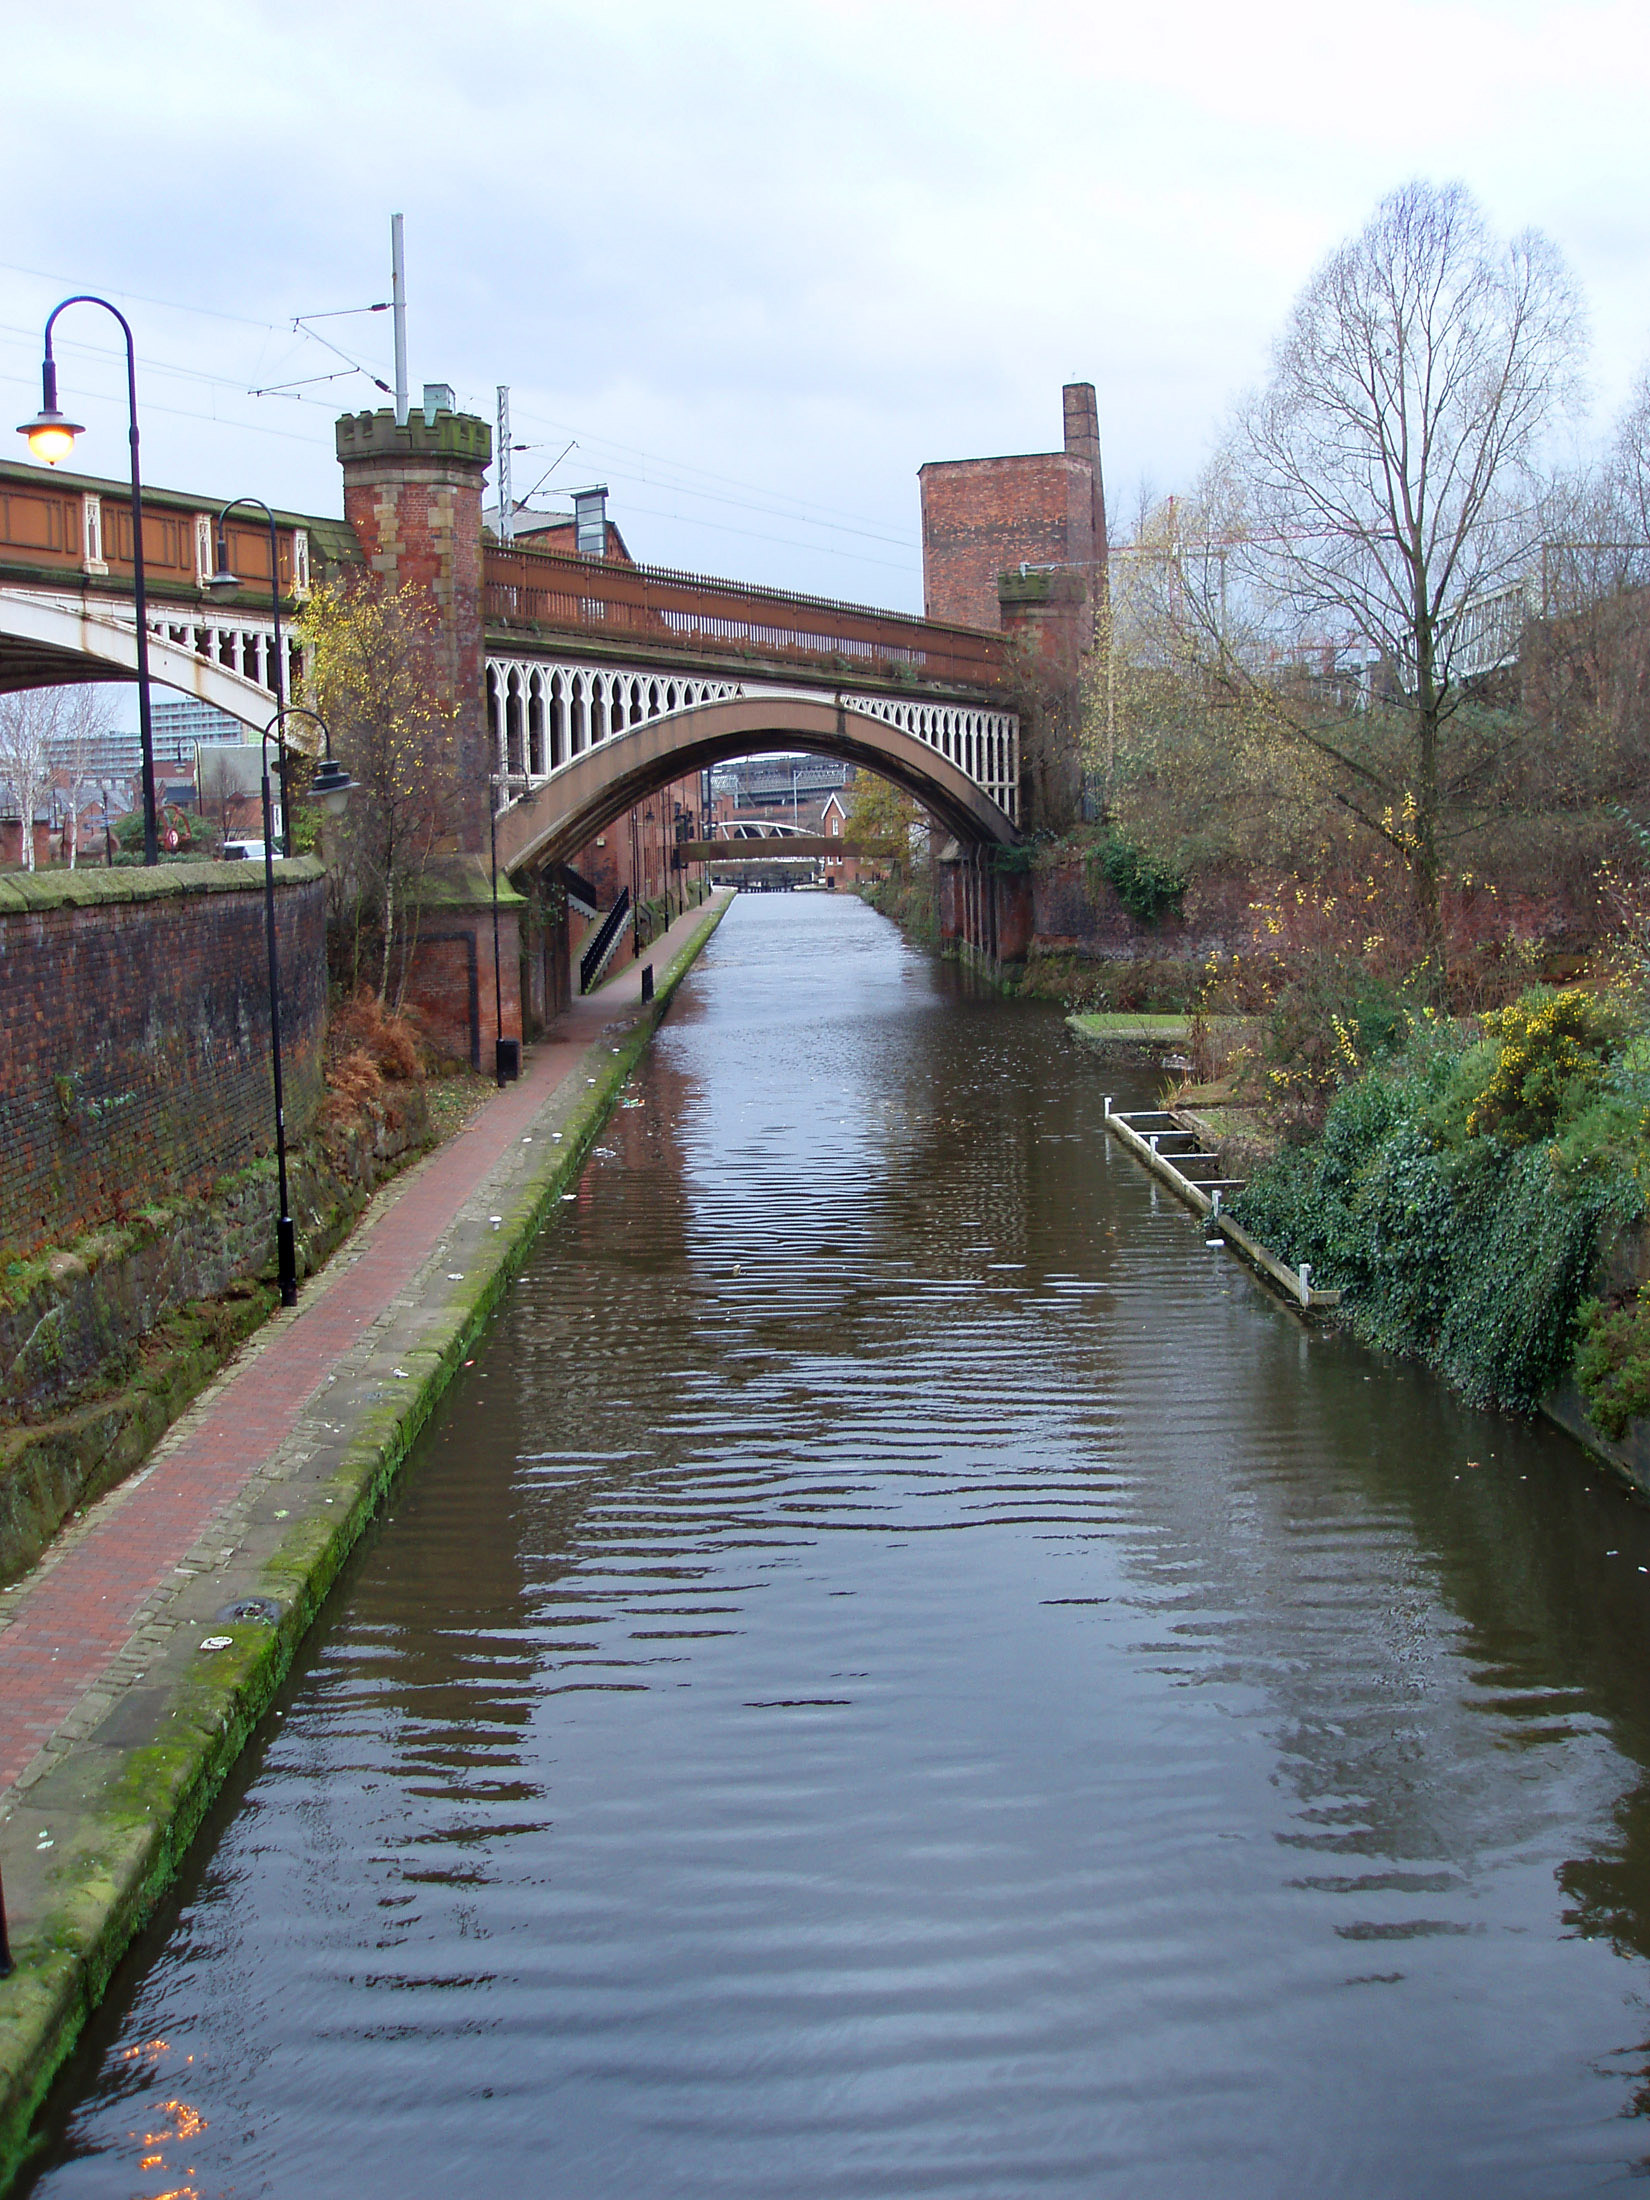 Manchester canal towpath leading under the old arched red brick railroad to the industrial warehouses now part of the Castlefield conservation area